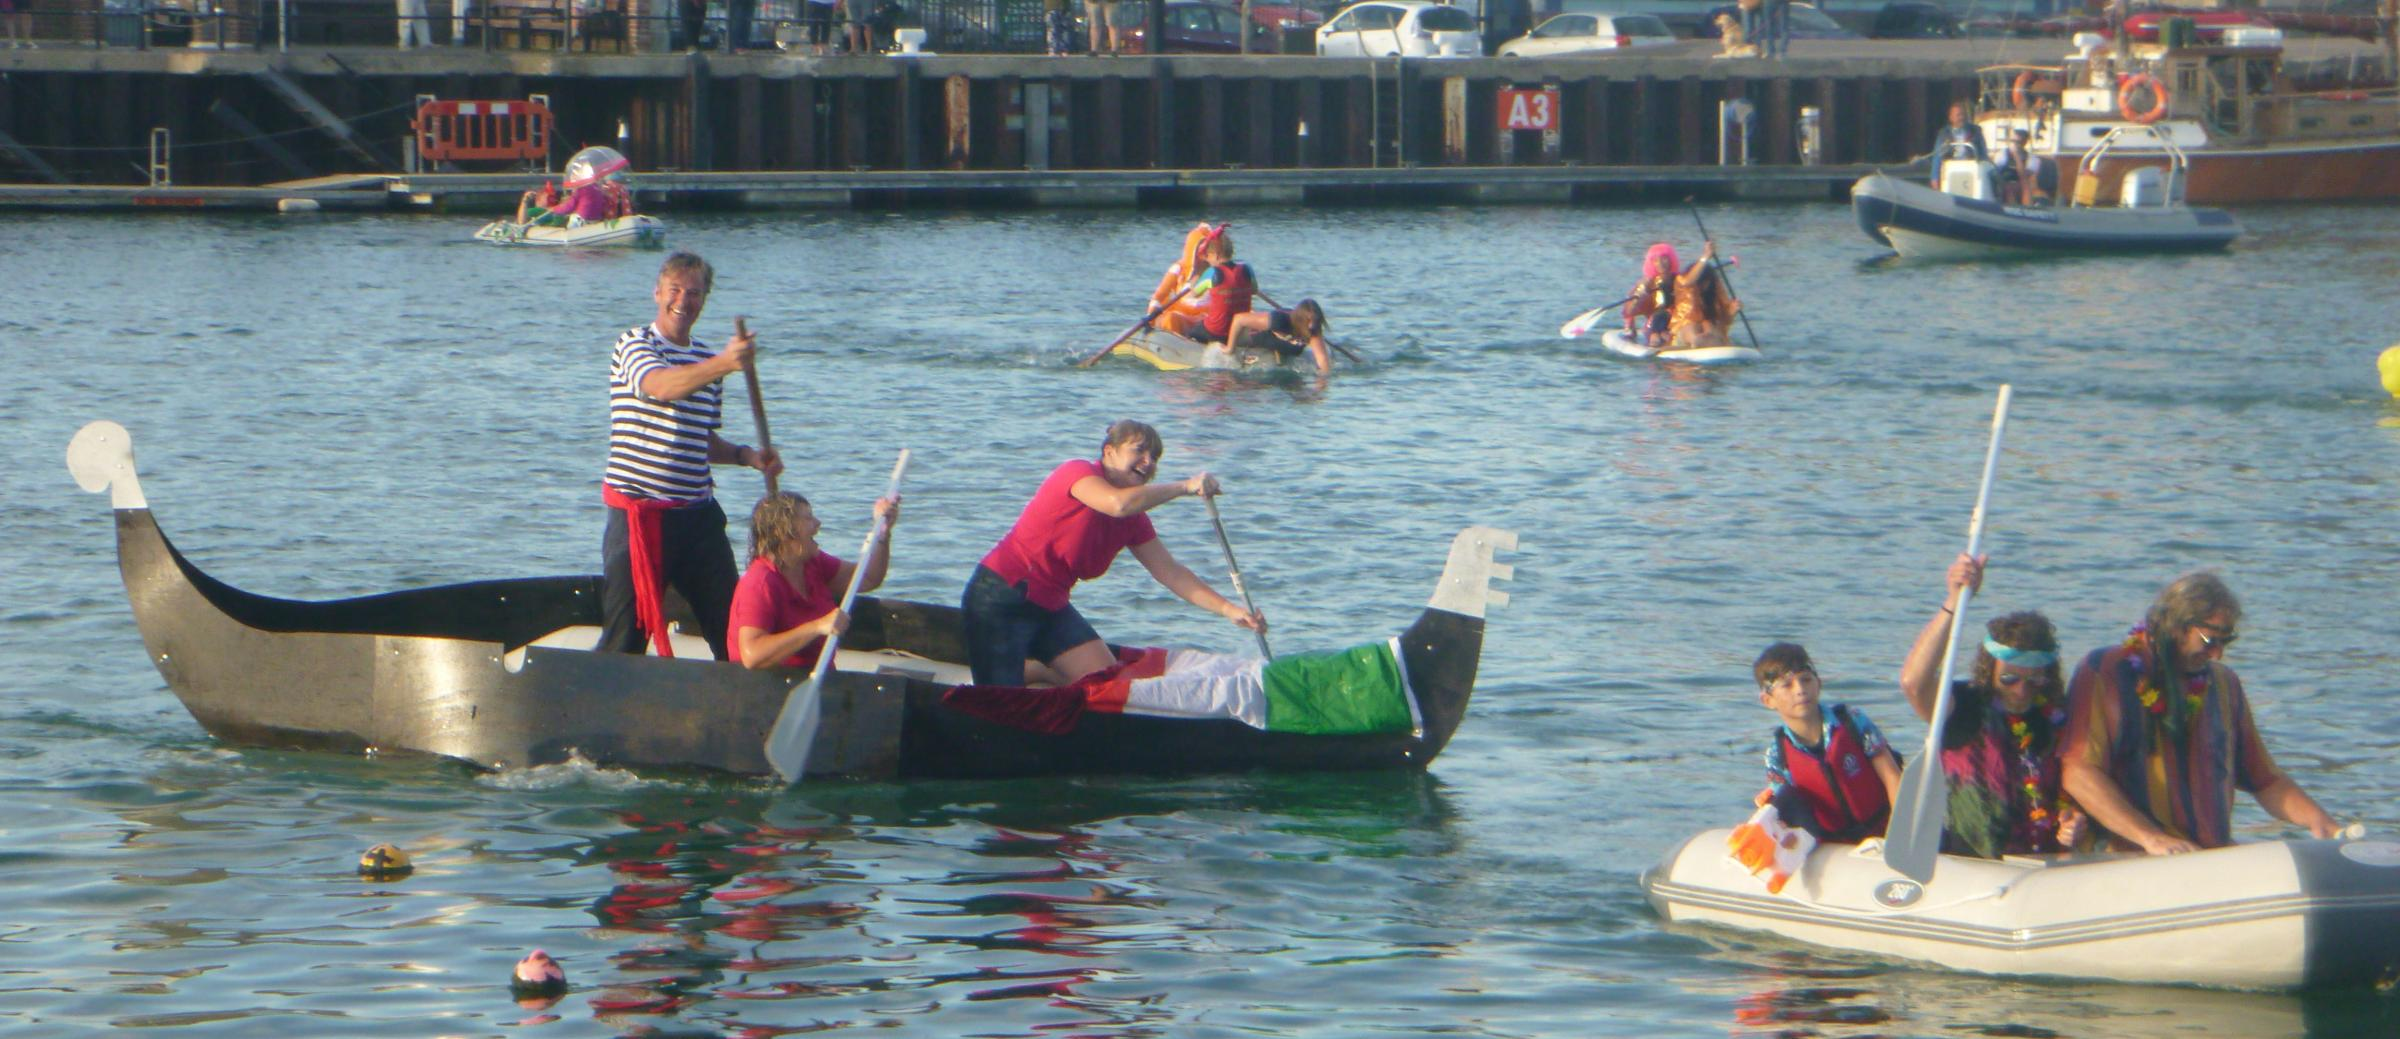 FANCY DRESS FUN: Weymouth Sailing Club held their annual tender race in Weymouth Harbour to kick off the Weymouth Regatta weekend